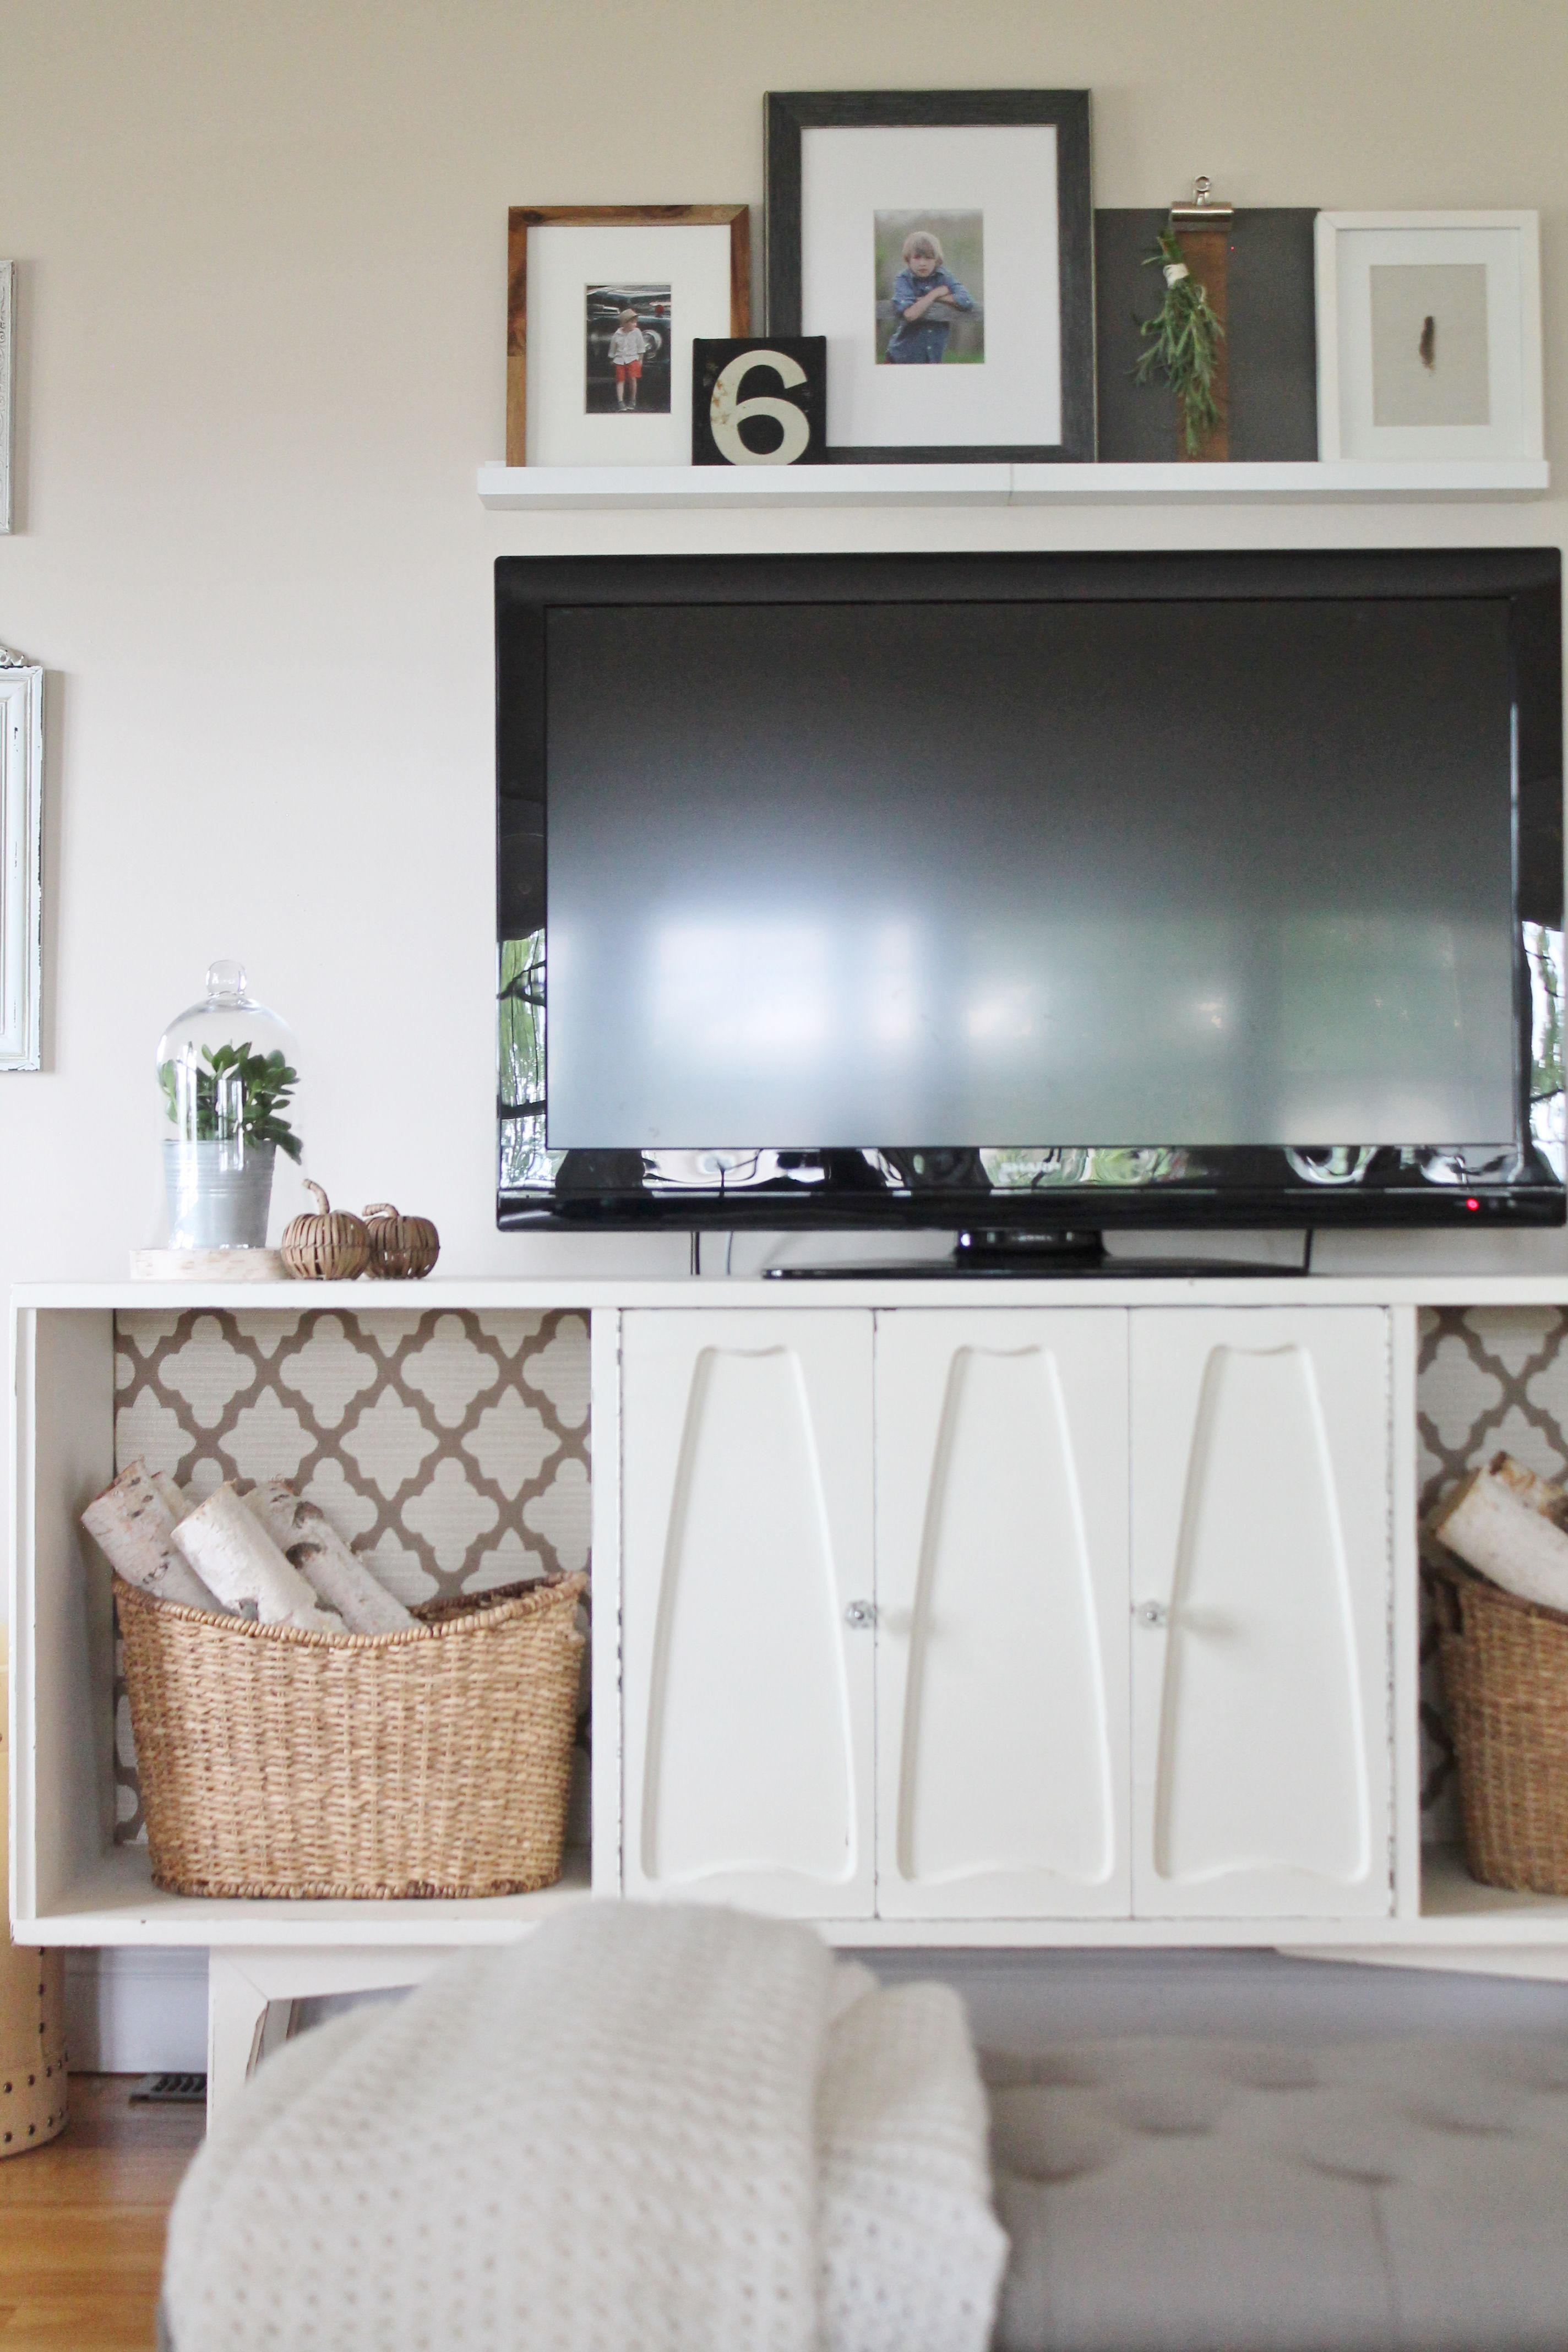 My Inspired Room | Media cabinets, Mid century and Shelving